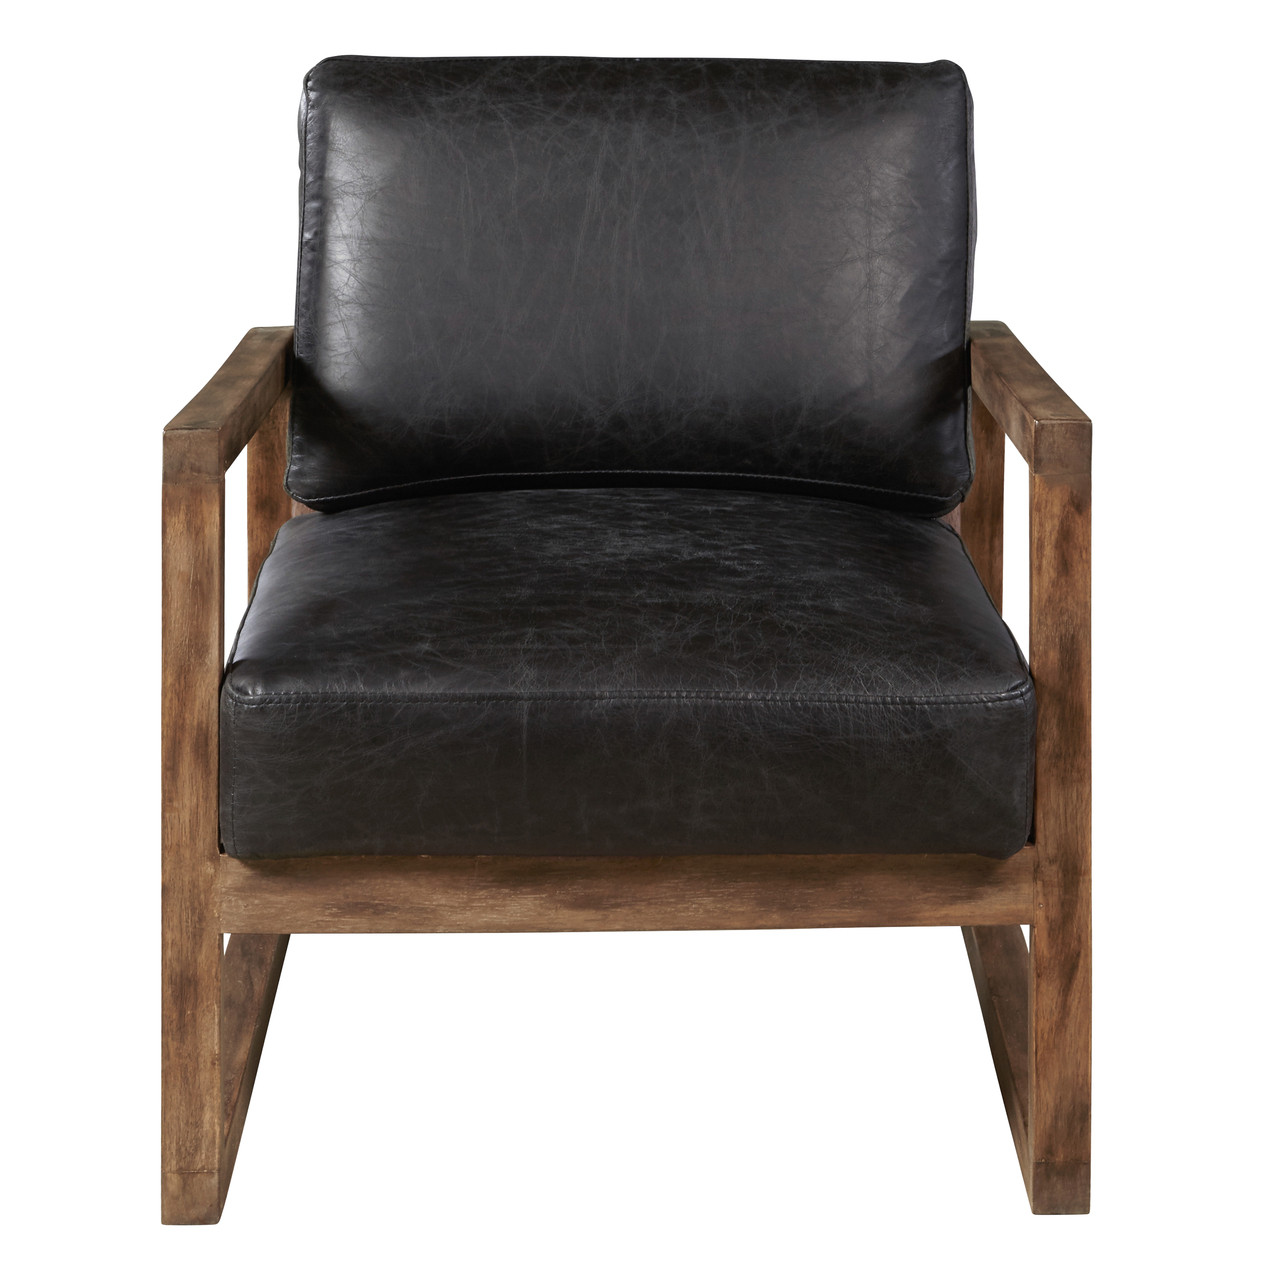 Delancy Arm Chair   Distressed Black Leather